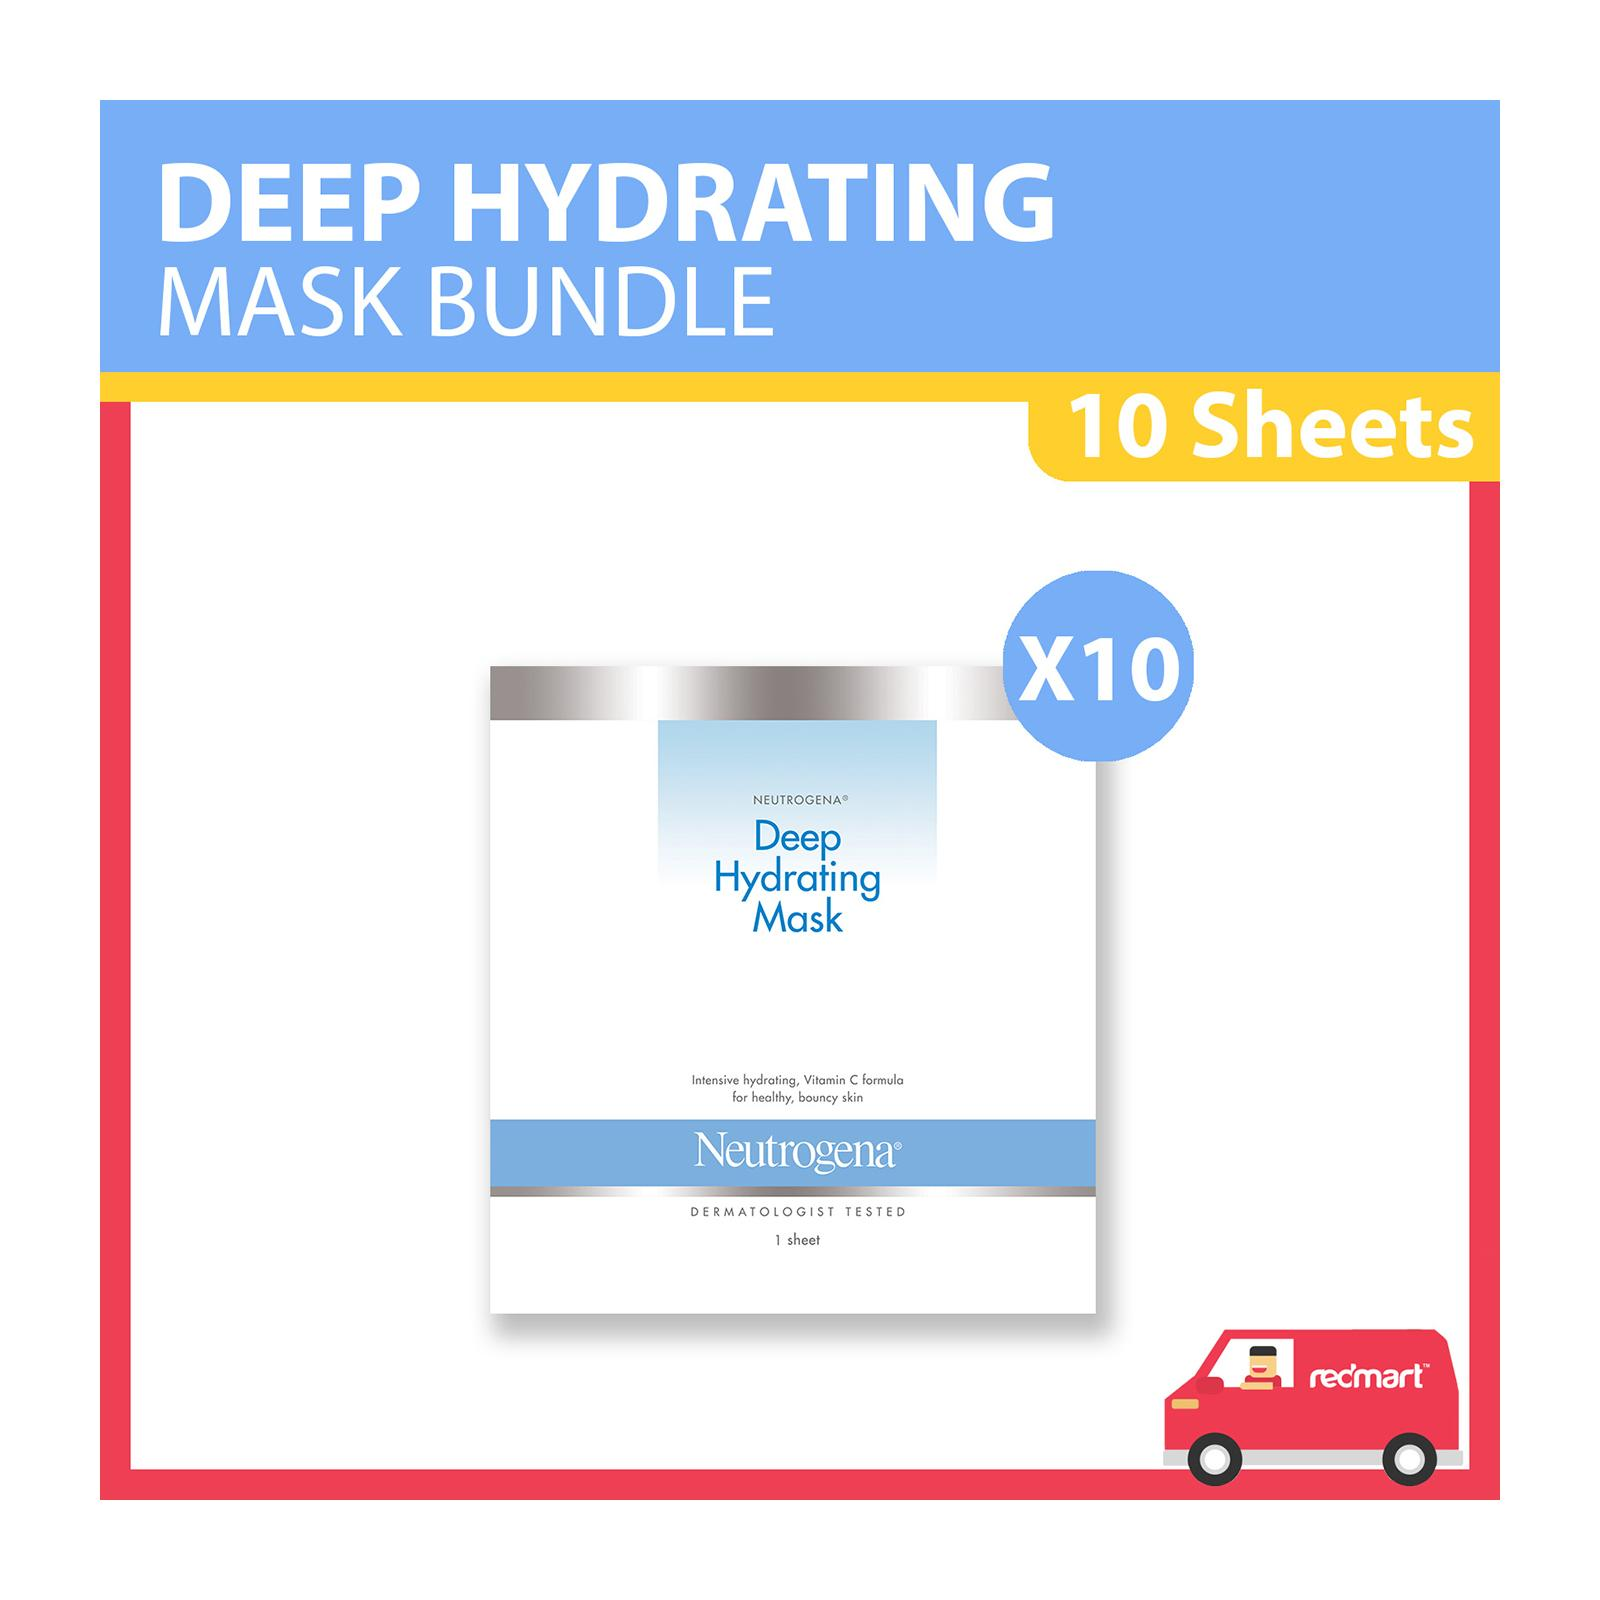 Neutrogena Deep Hydrating Mask - Bundle of 10